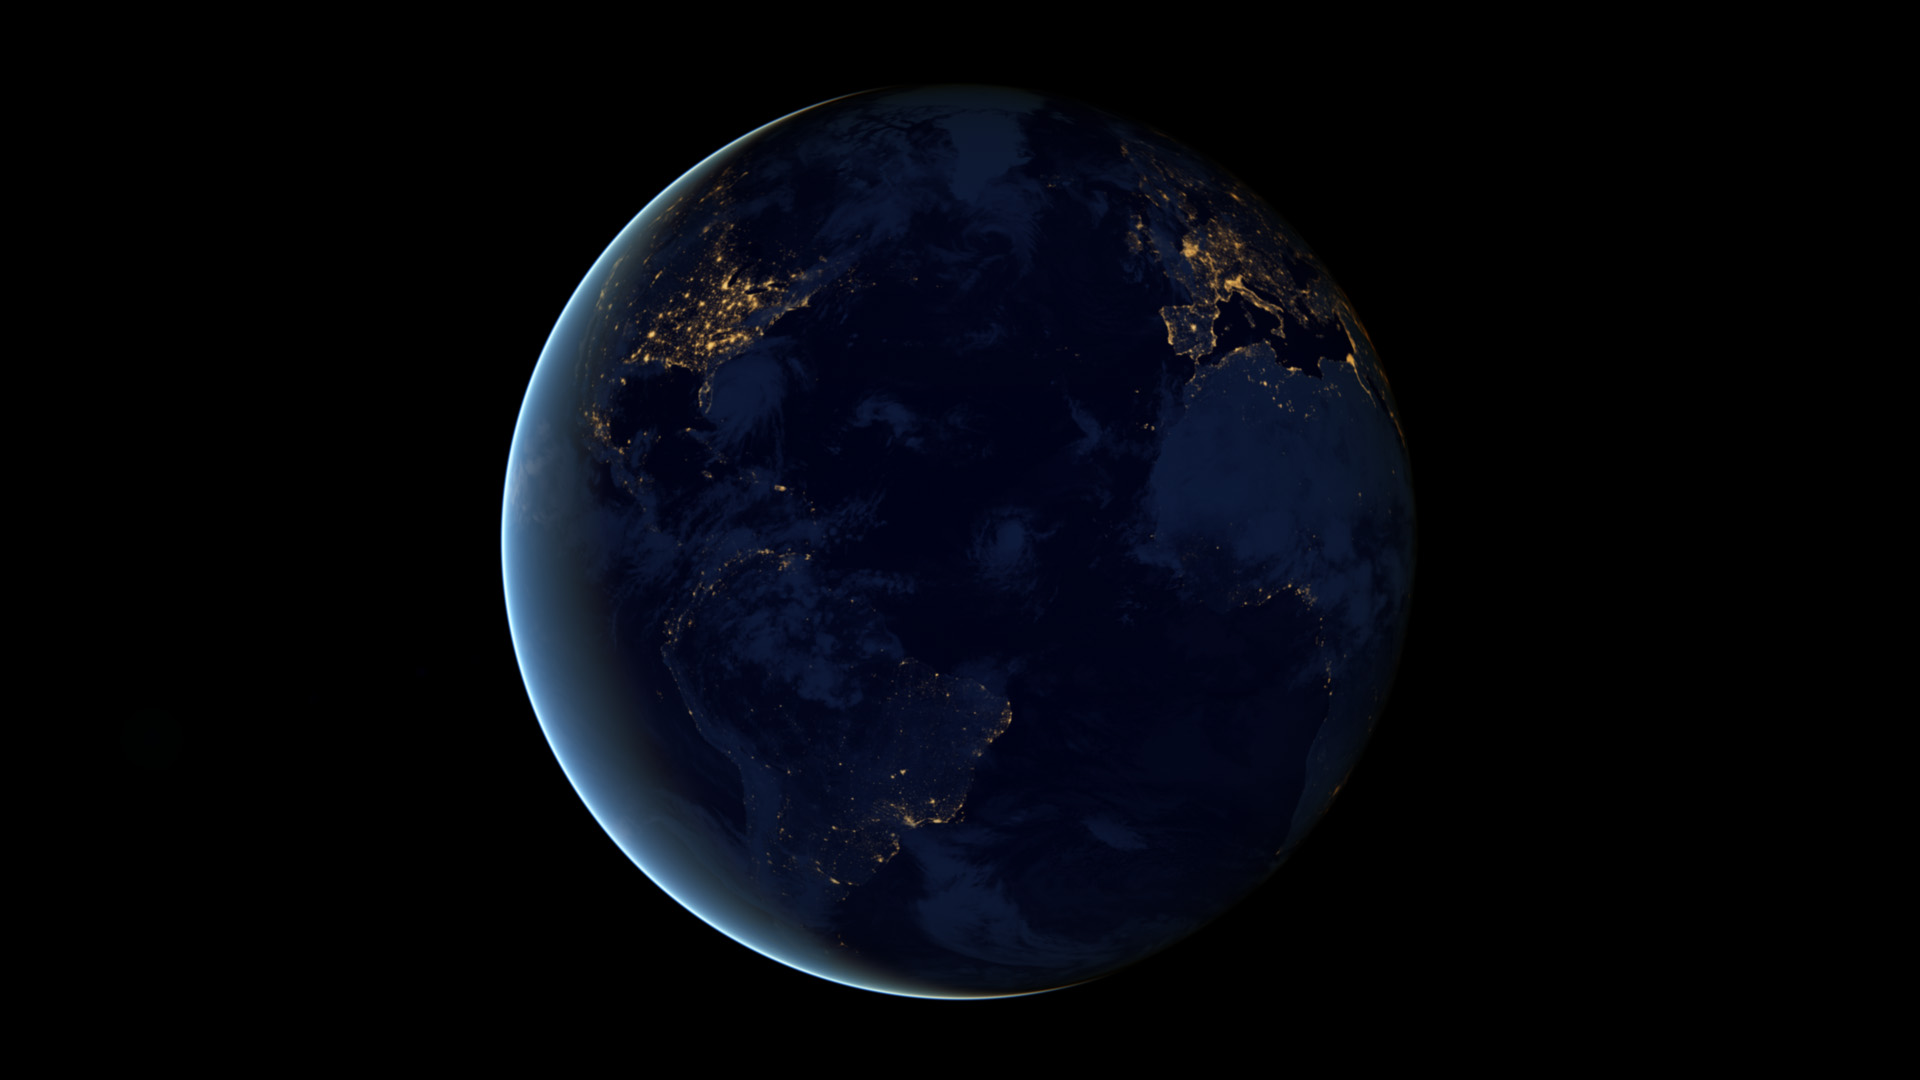 nasa planet pictures of black - photo #3